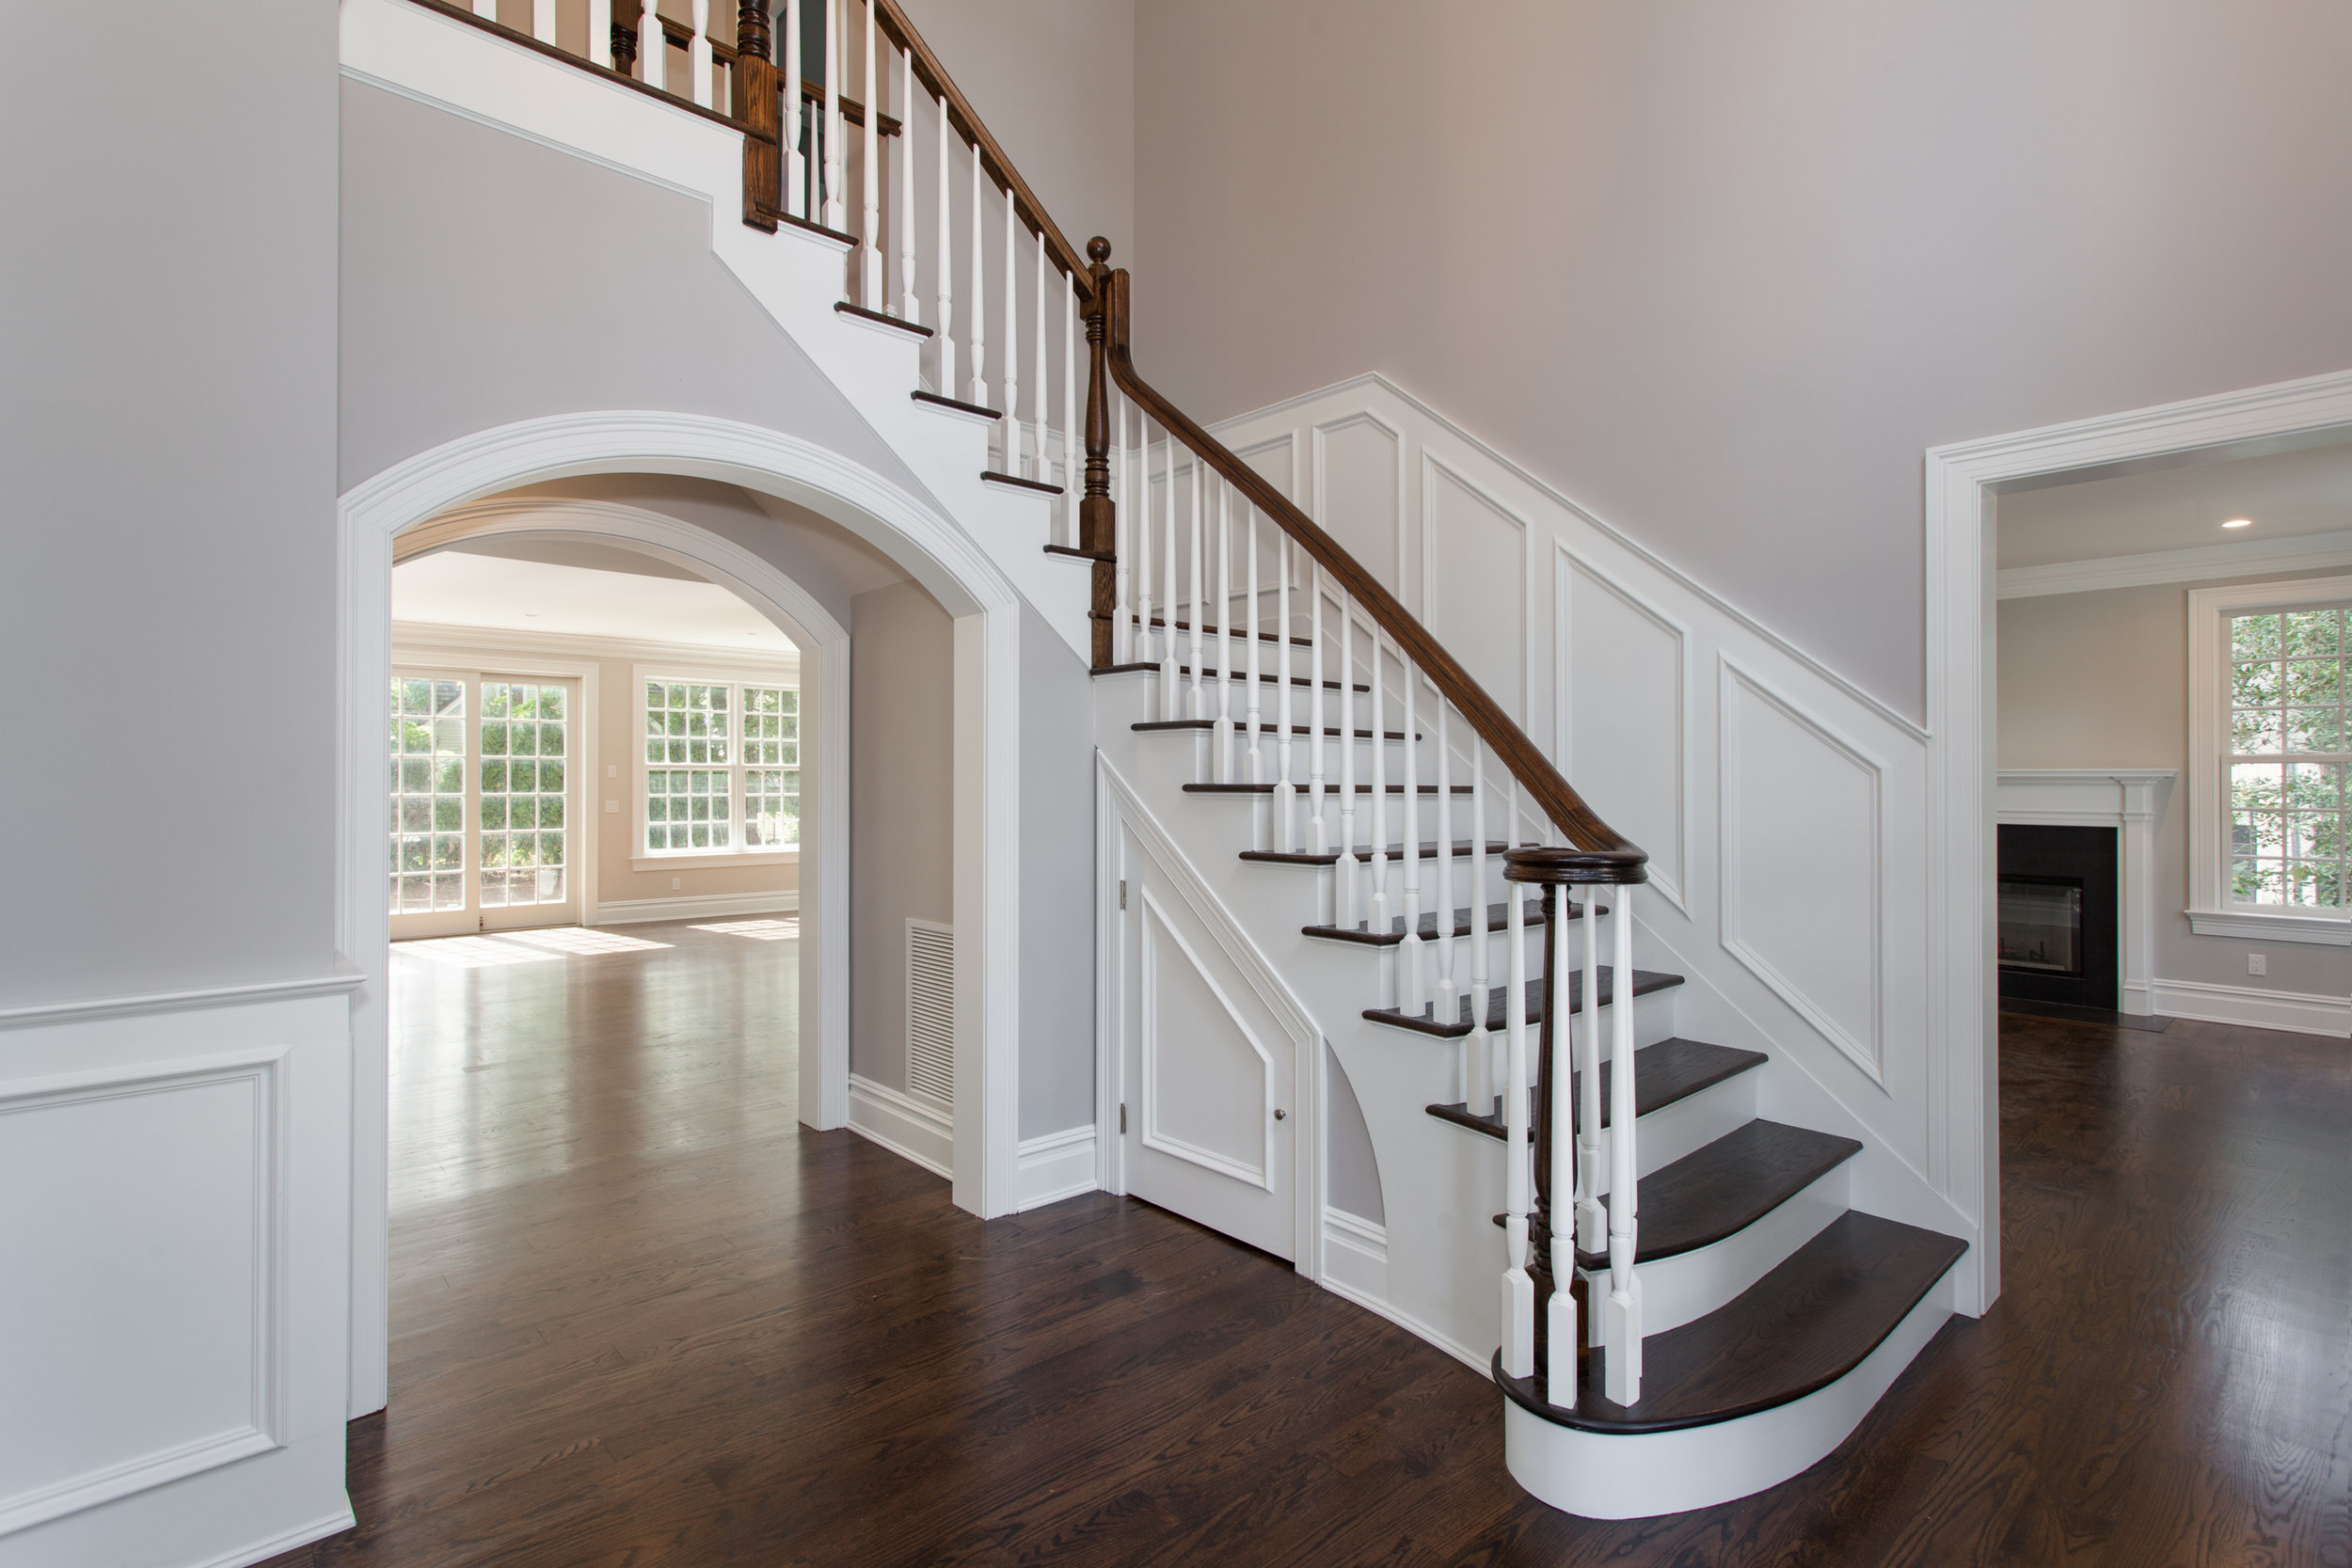 GRAND ENTRANCE FOYER  |21' Tray Ceiling, Wainscoting & Palladian Window